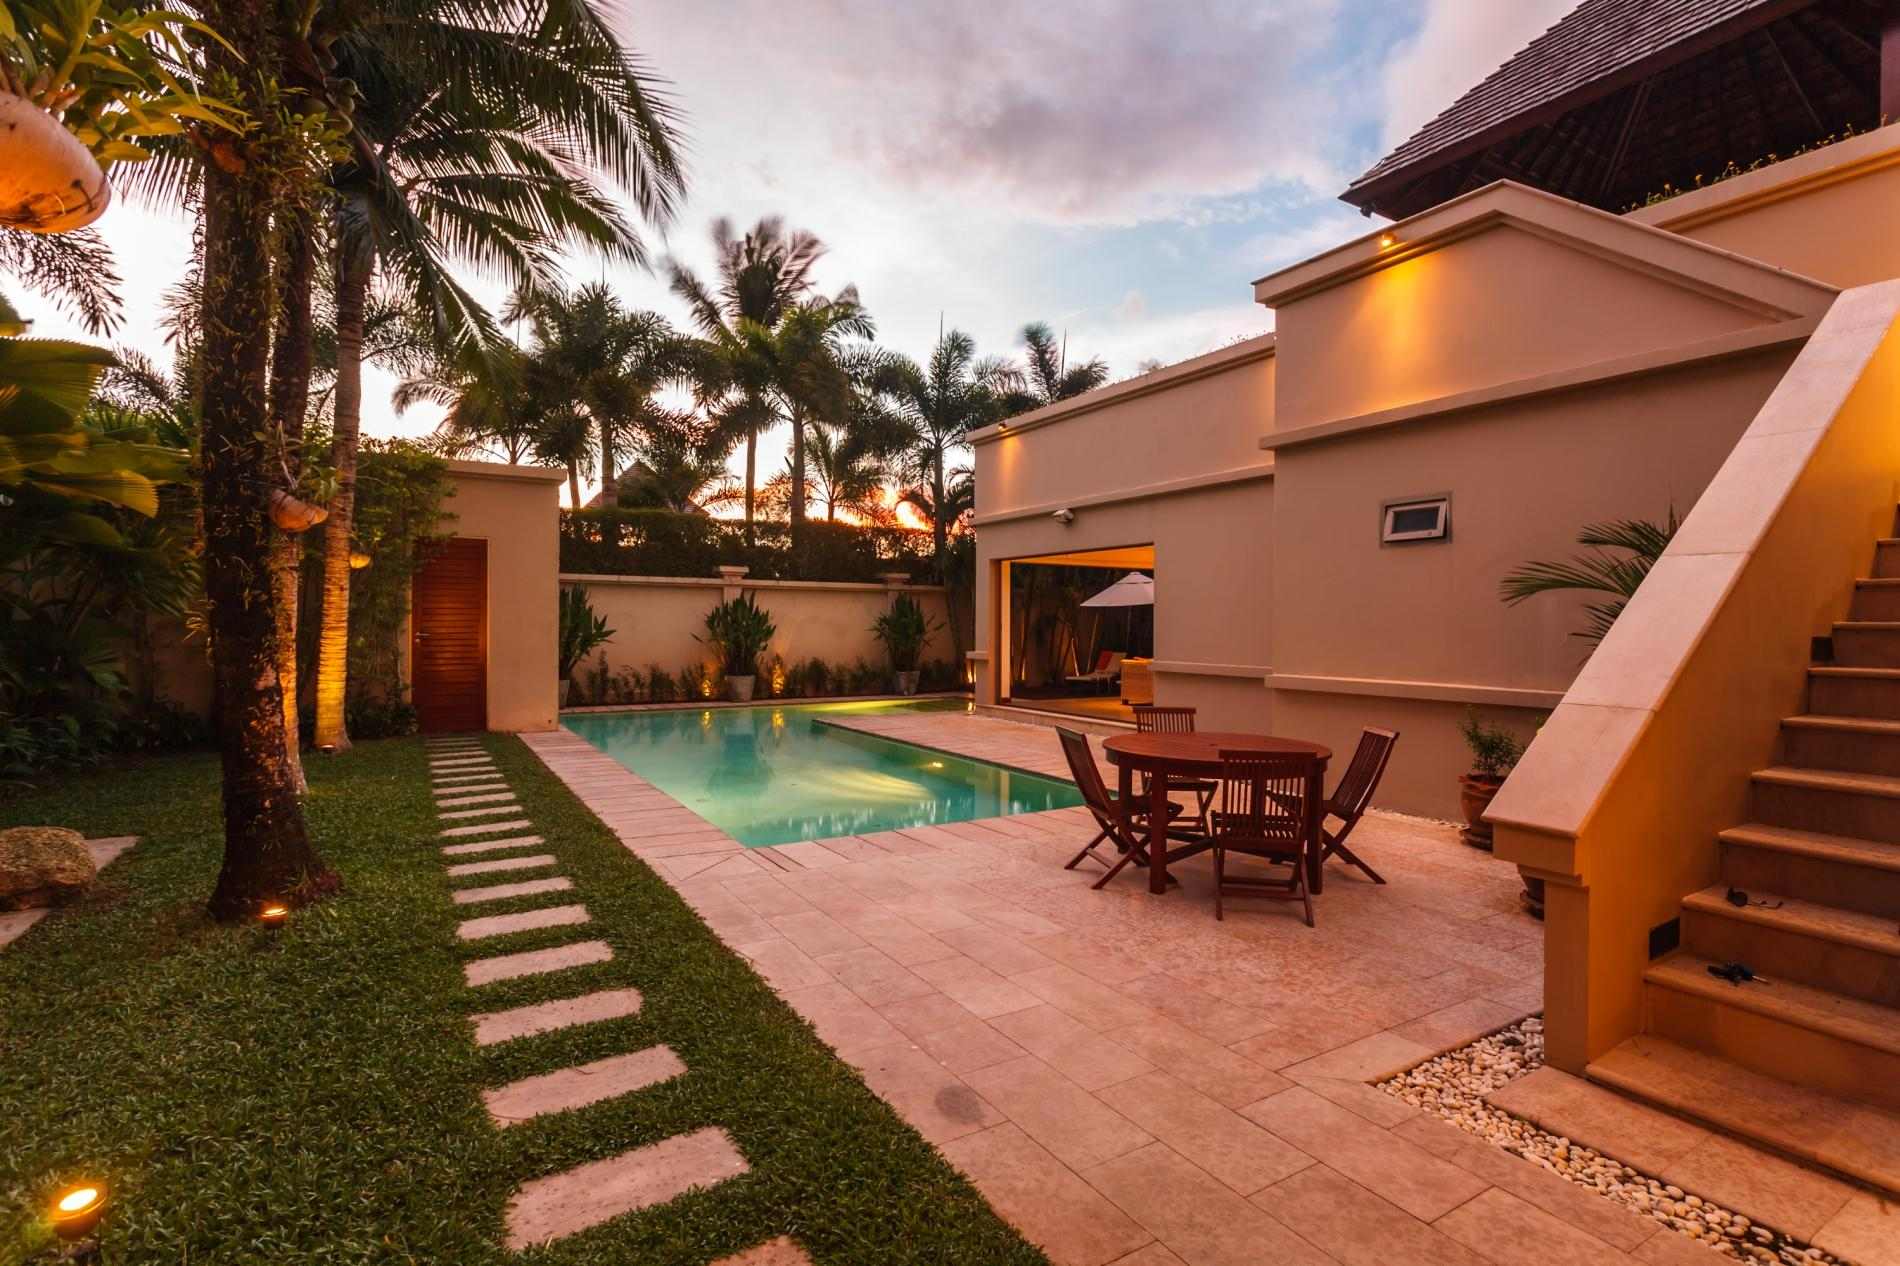 Apartment TR111 - Private pool villa in Bang Tao Residence - 3 bedrooms photo 16937517